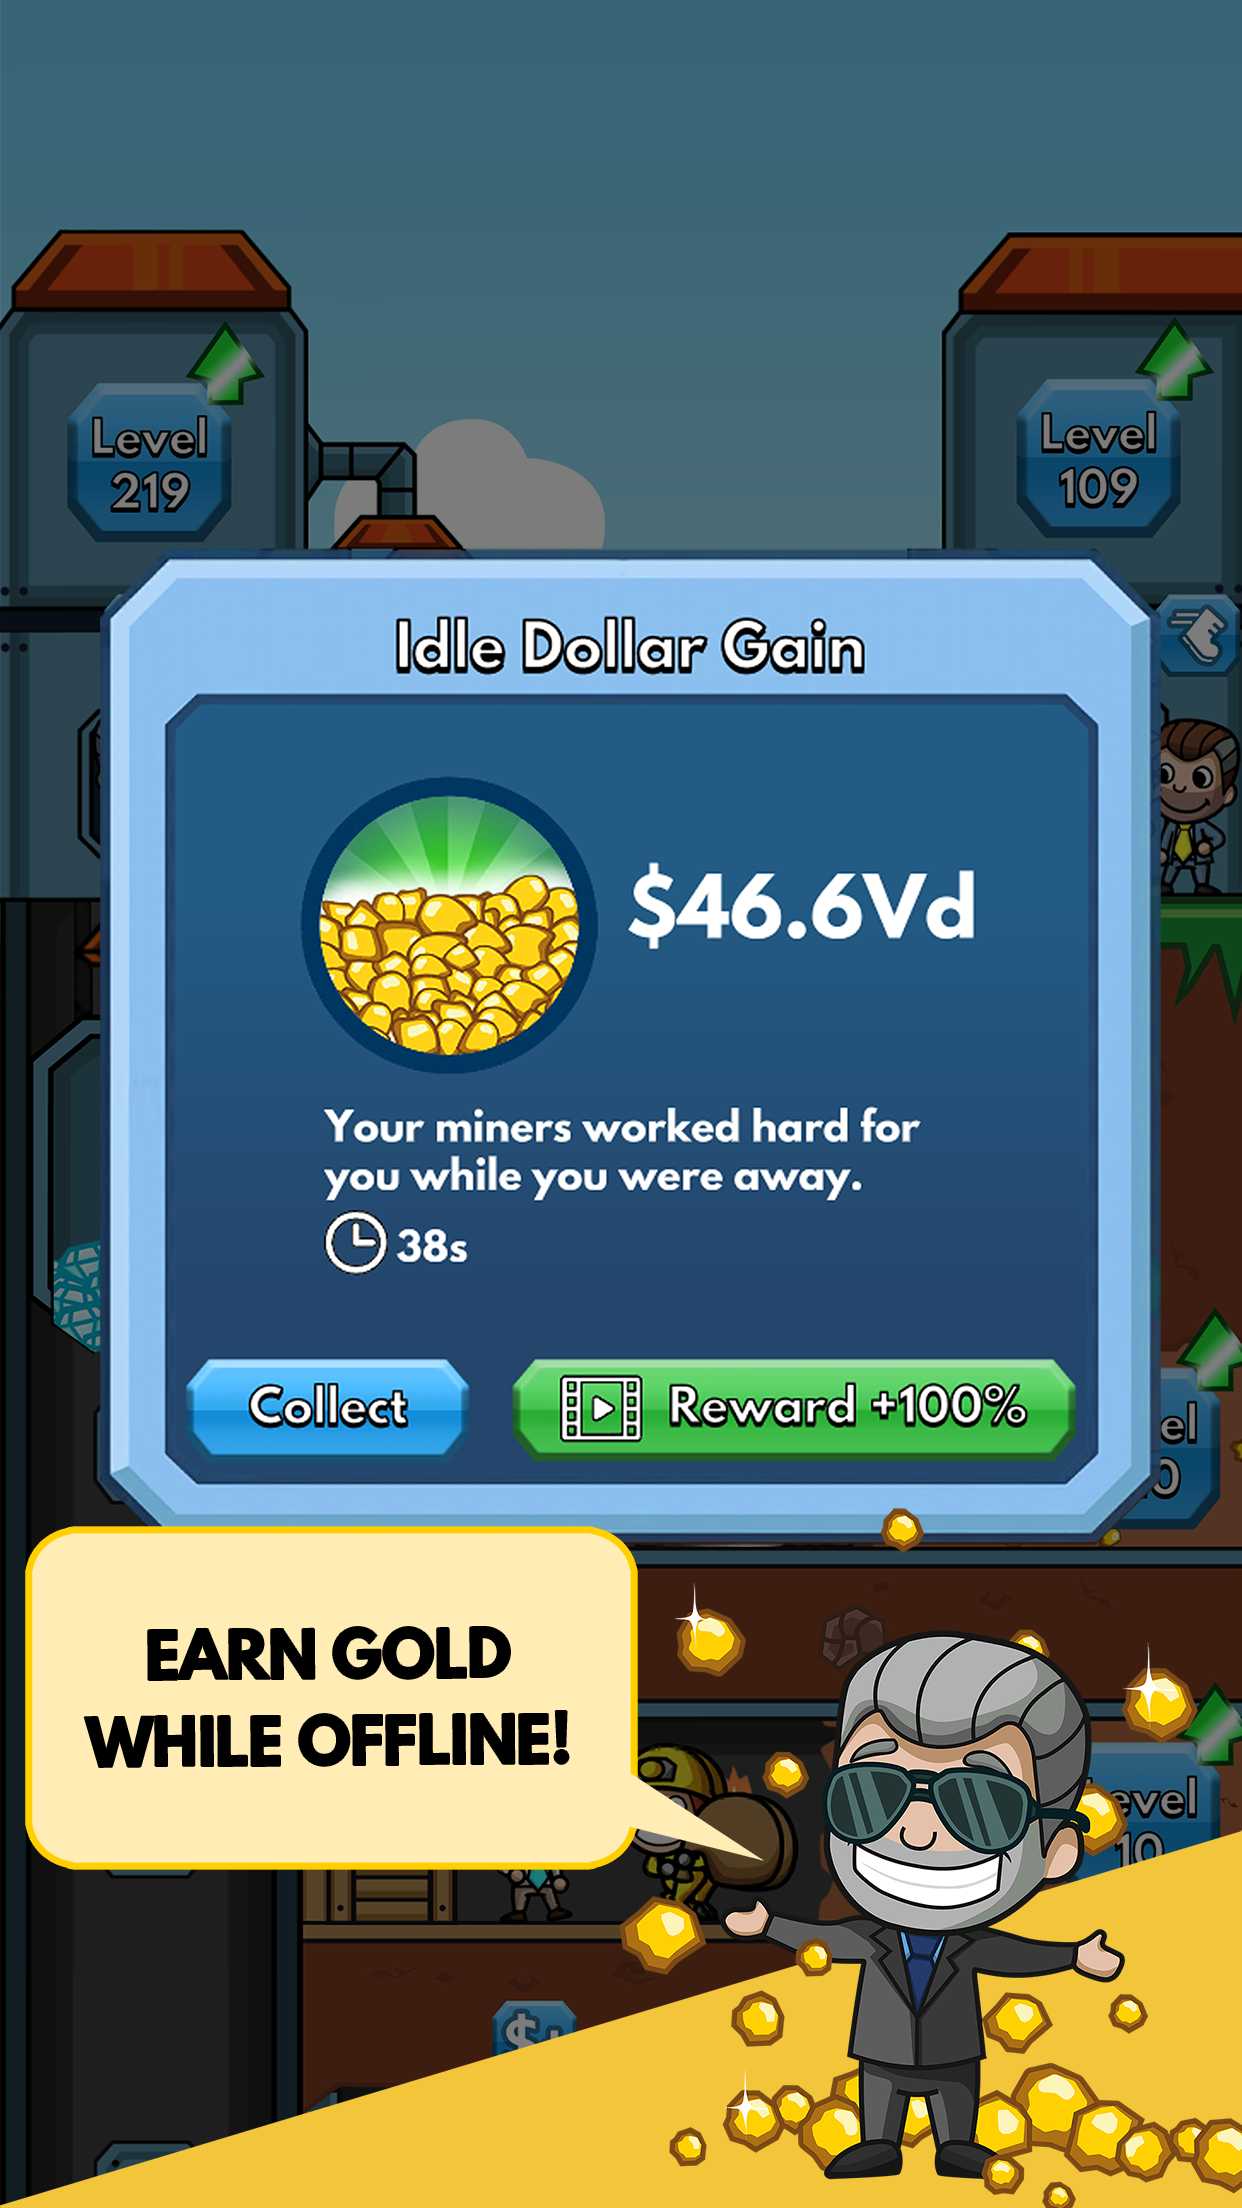 Earn gold while offline